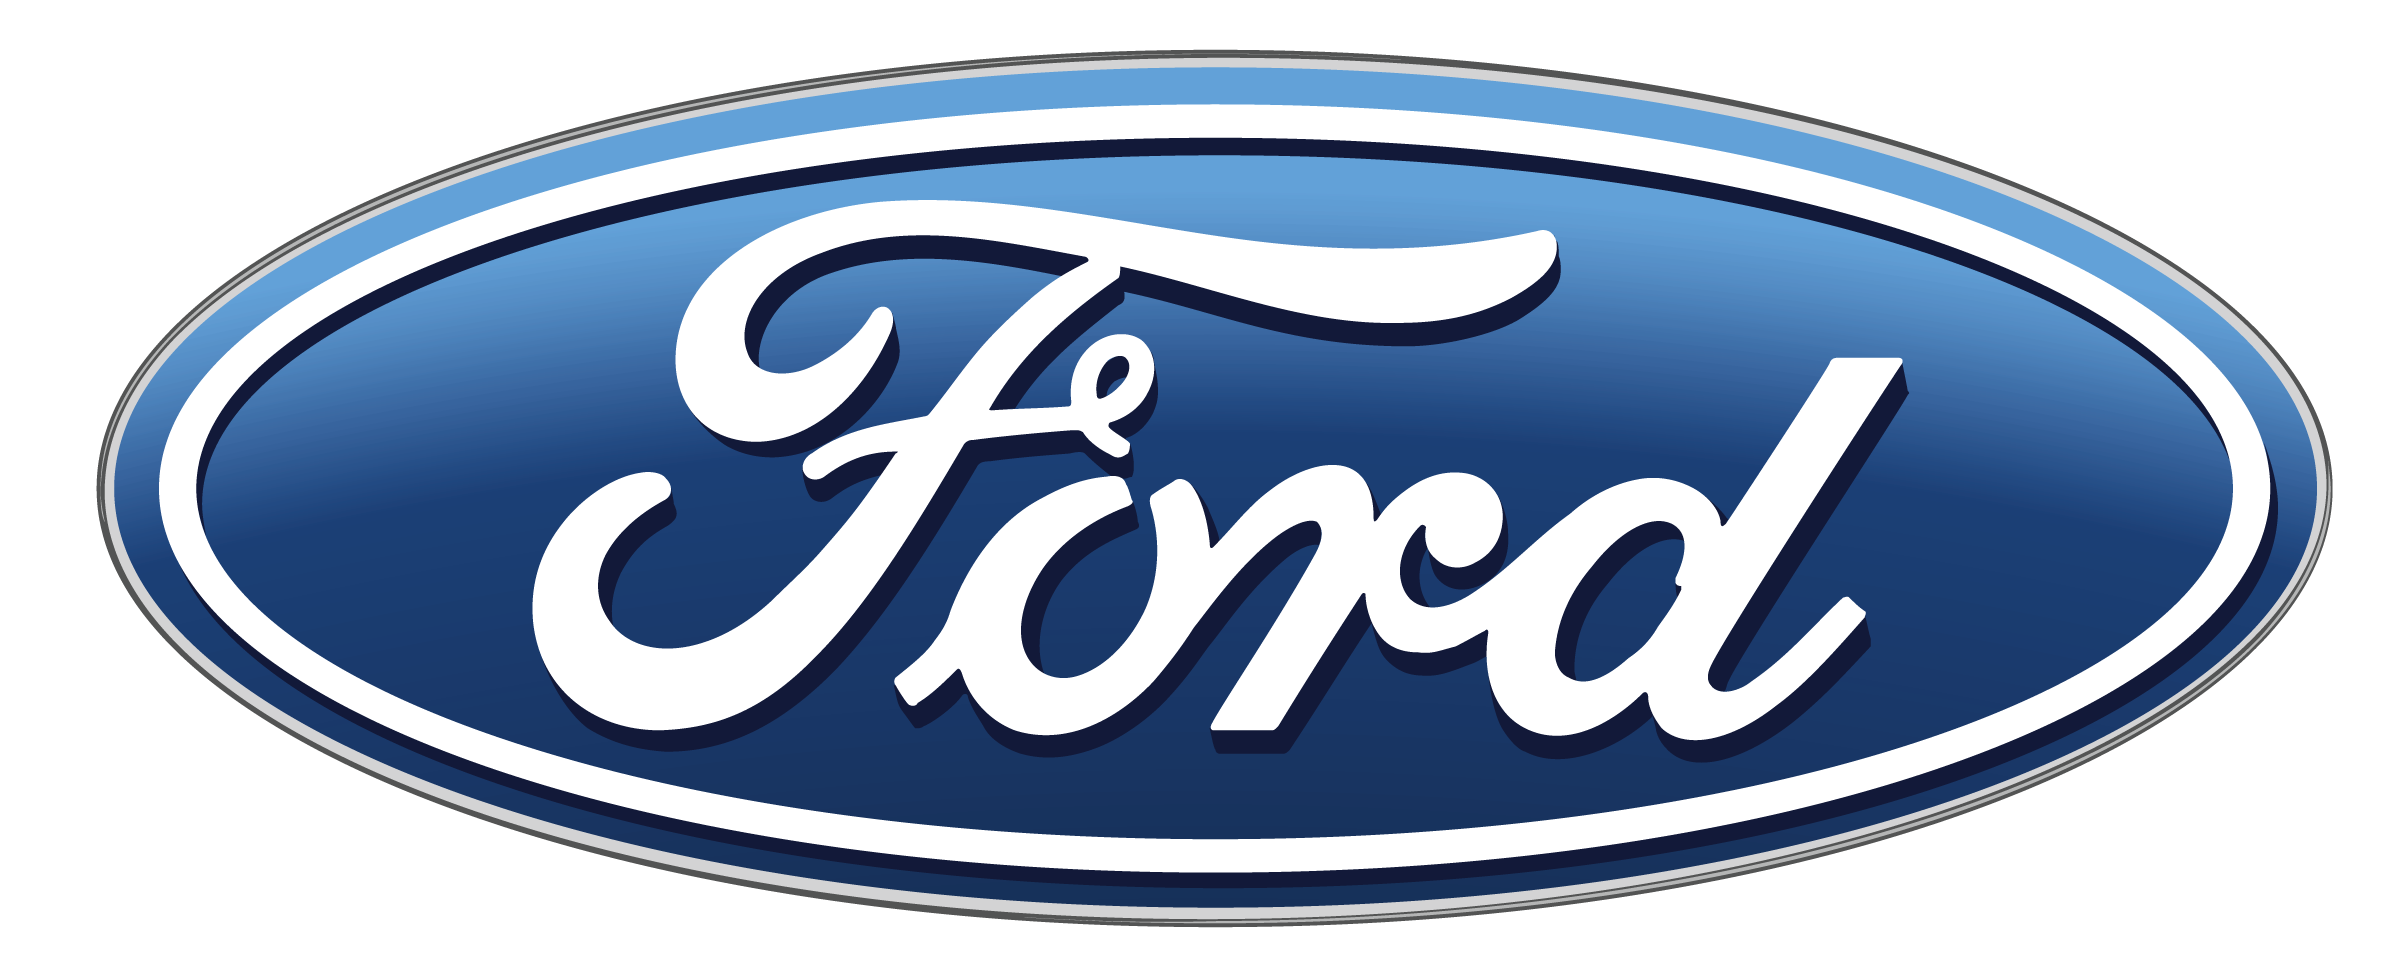 ford car logos png #1795